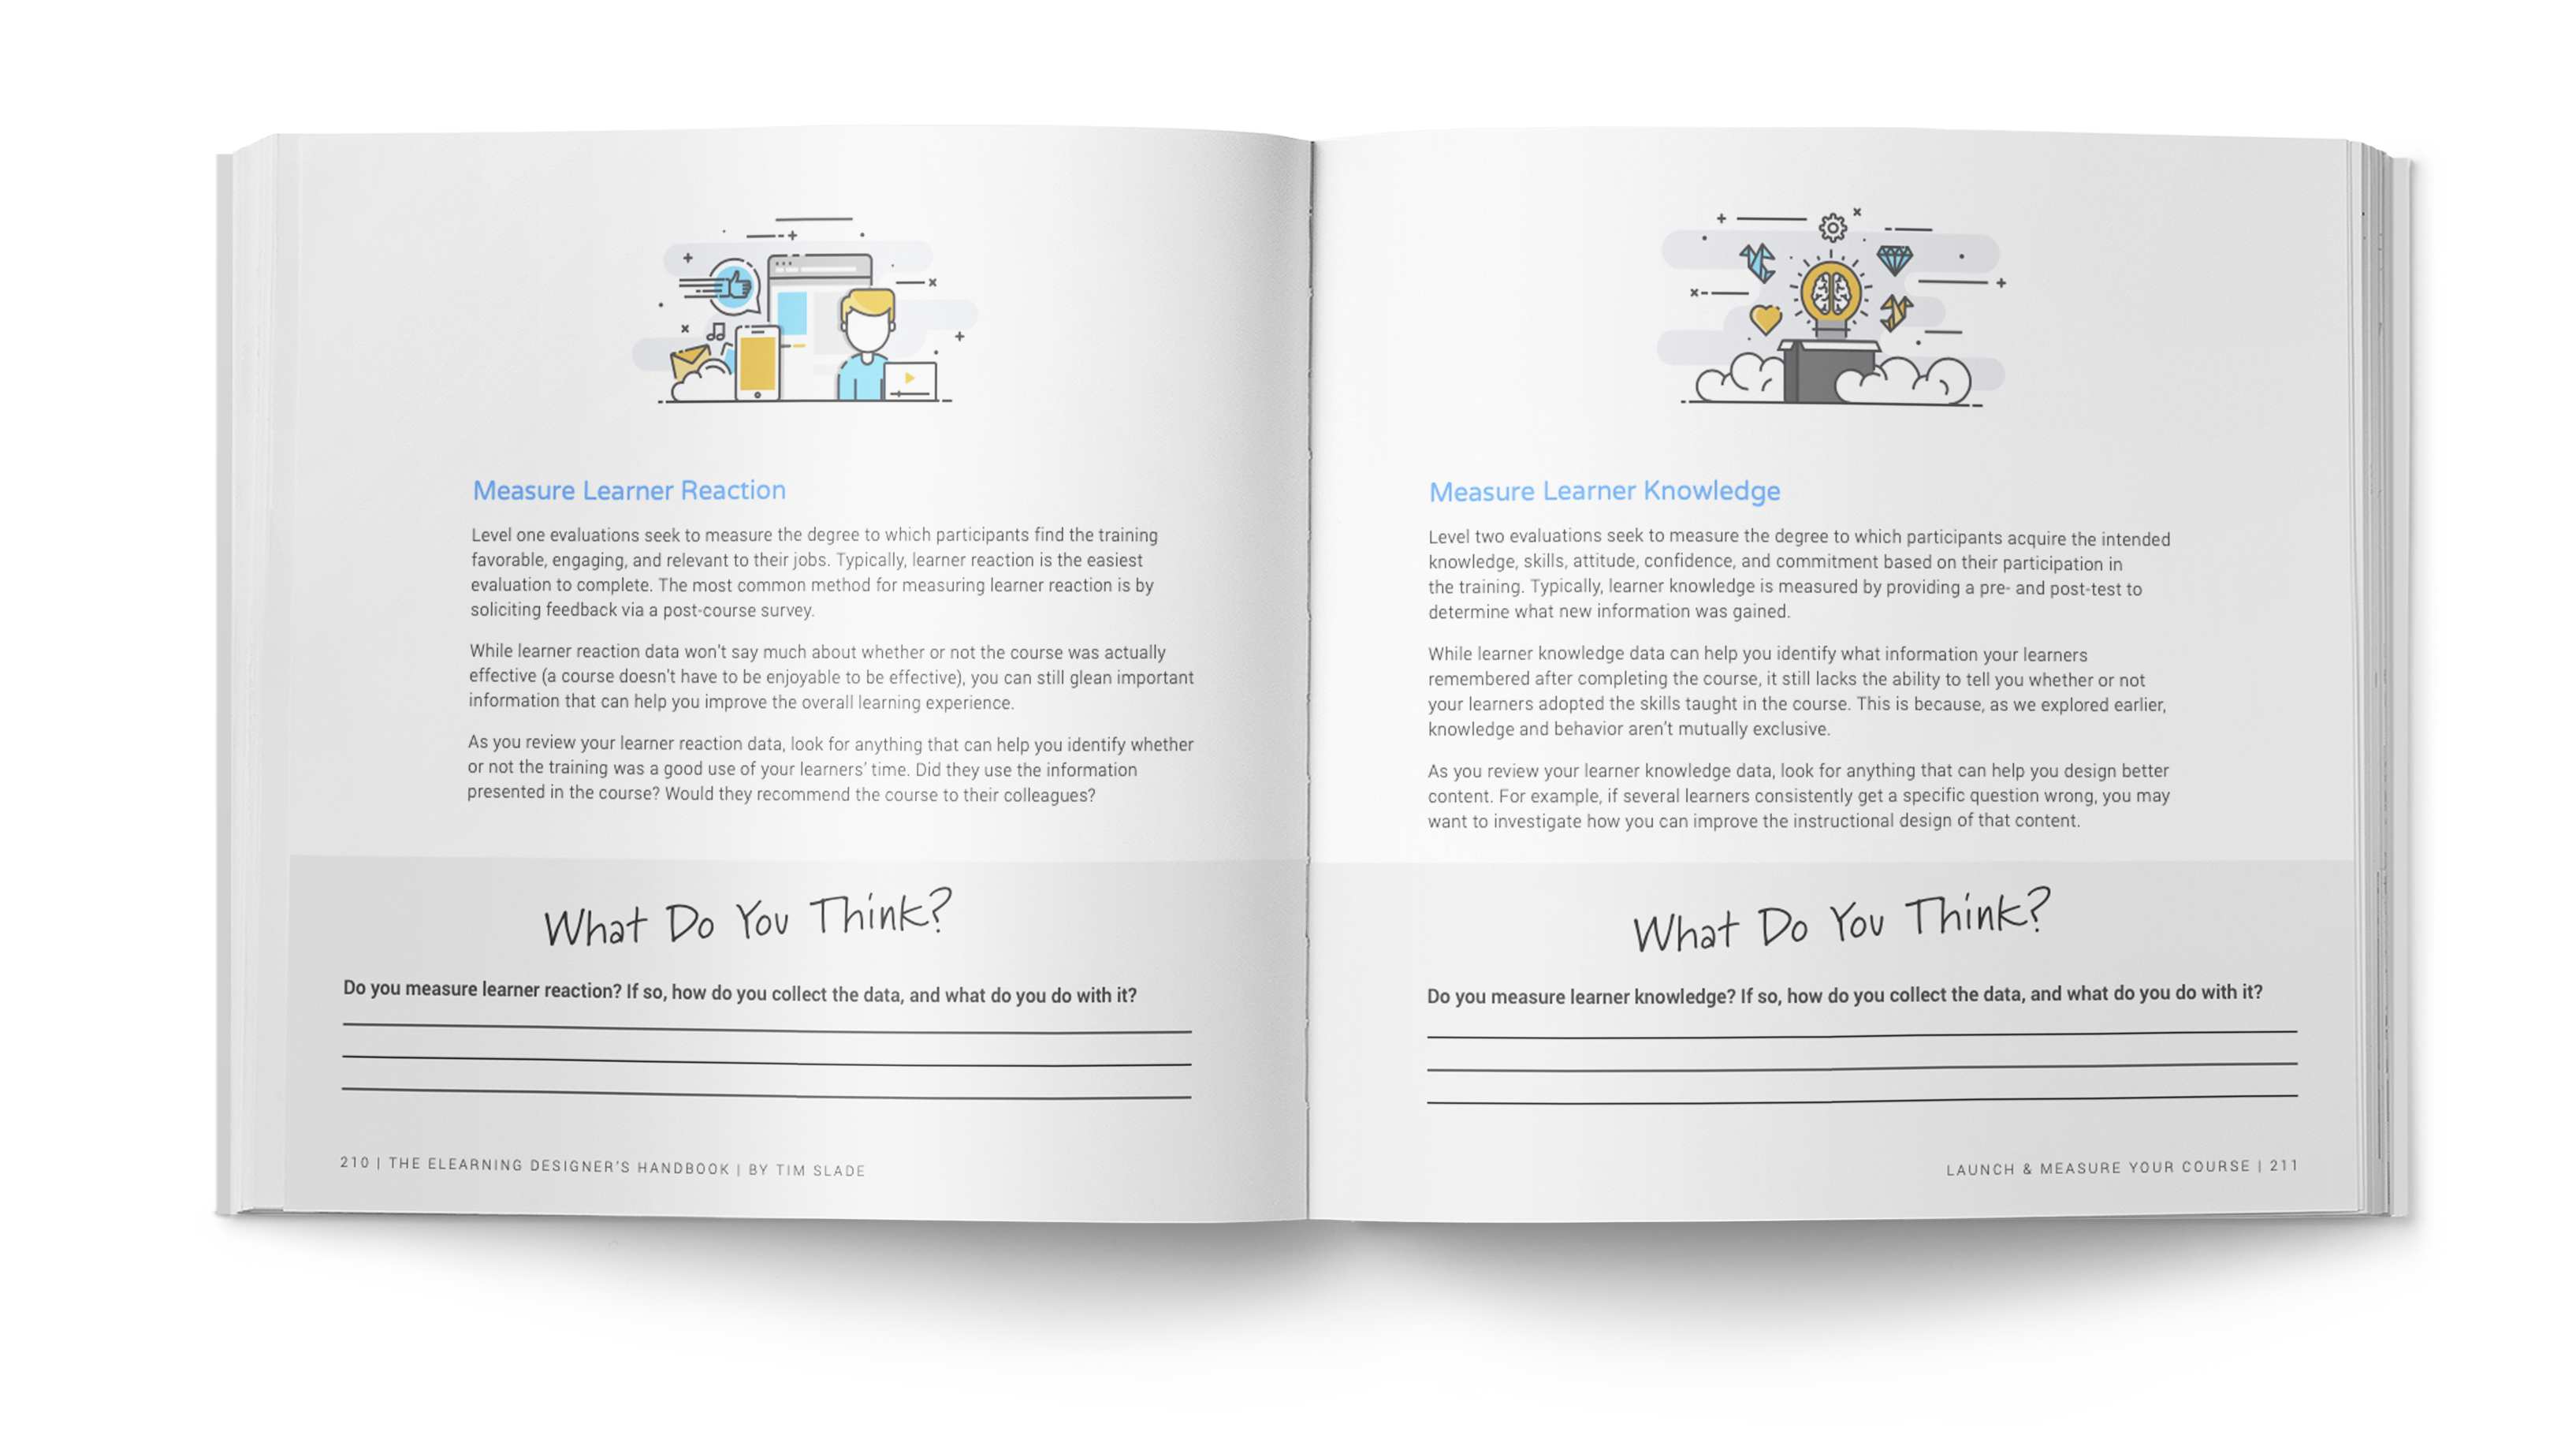 The eLearning Designer's Handbook by Tim Slade | Launch & Measure Your Course | Freelance eLearning Designer | The eLearning Designer's Academy